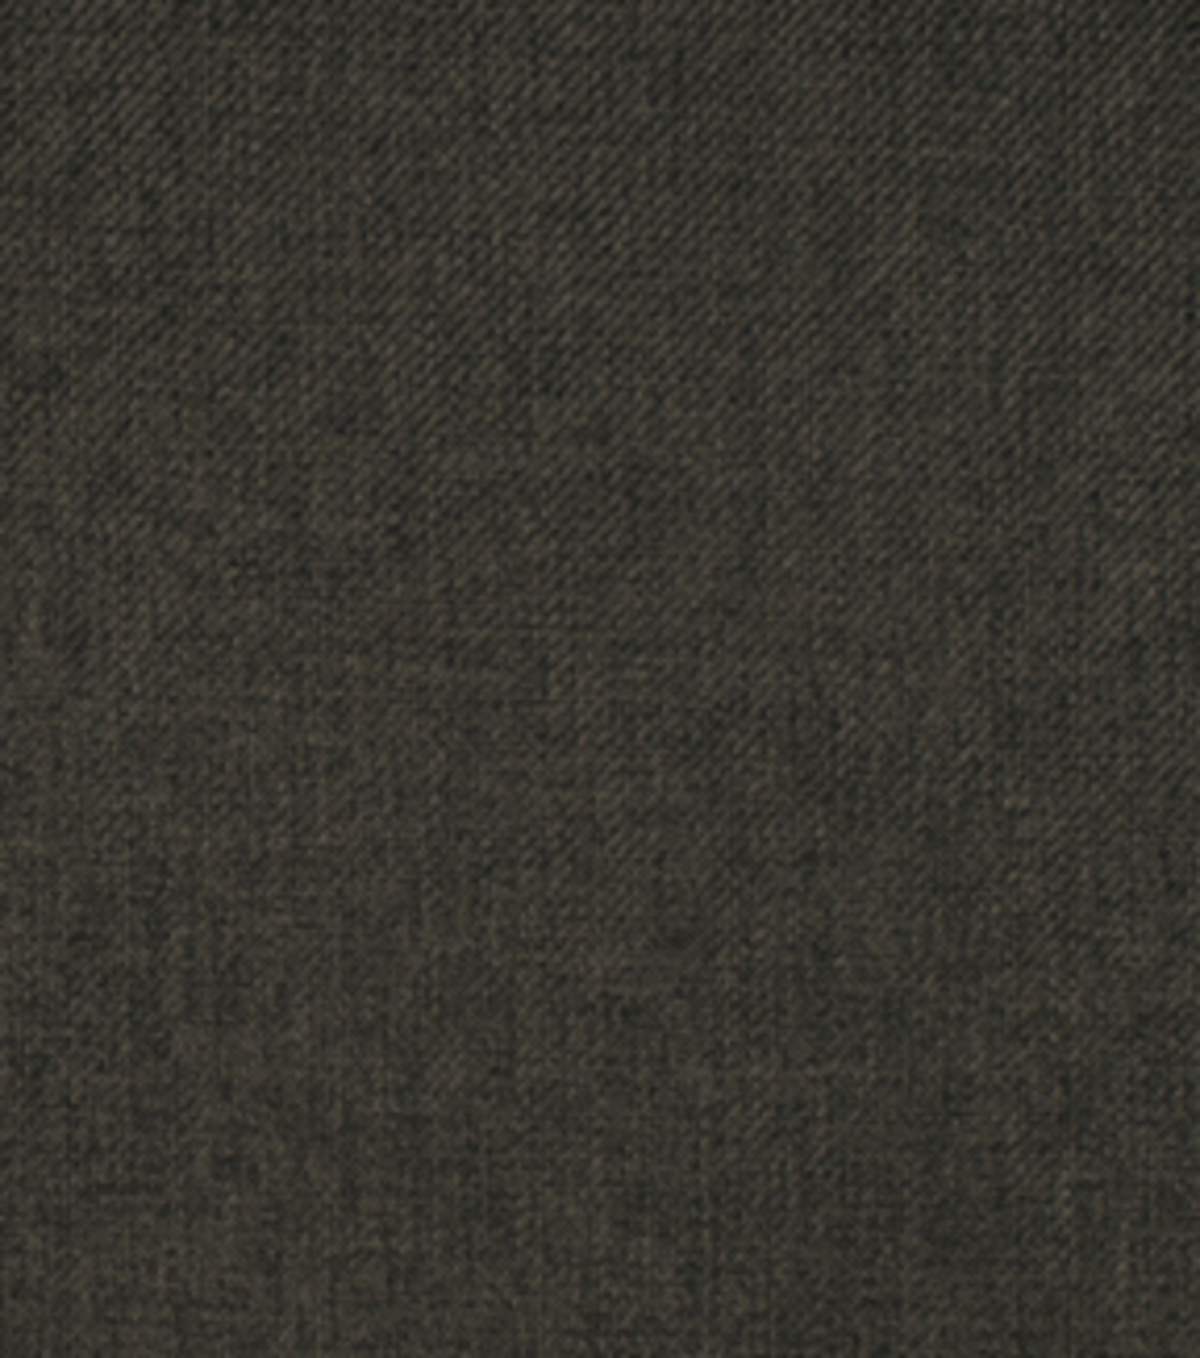 Home Decor 8\u0022x8\u0022 Fabric Swatch-Eaton Square Heston Charcoal